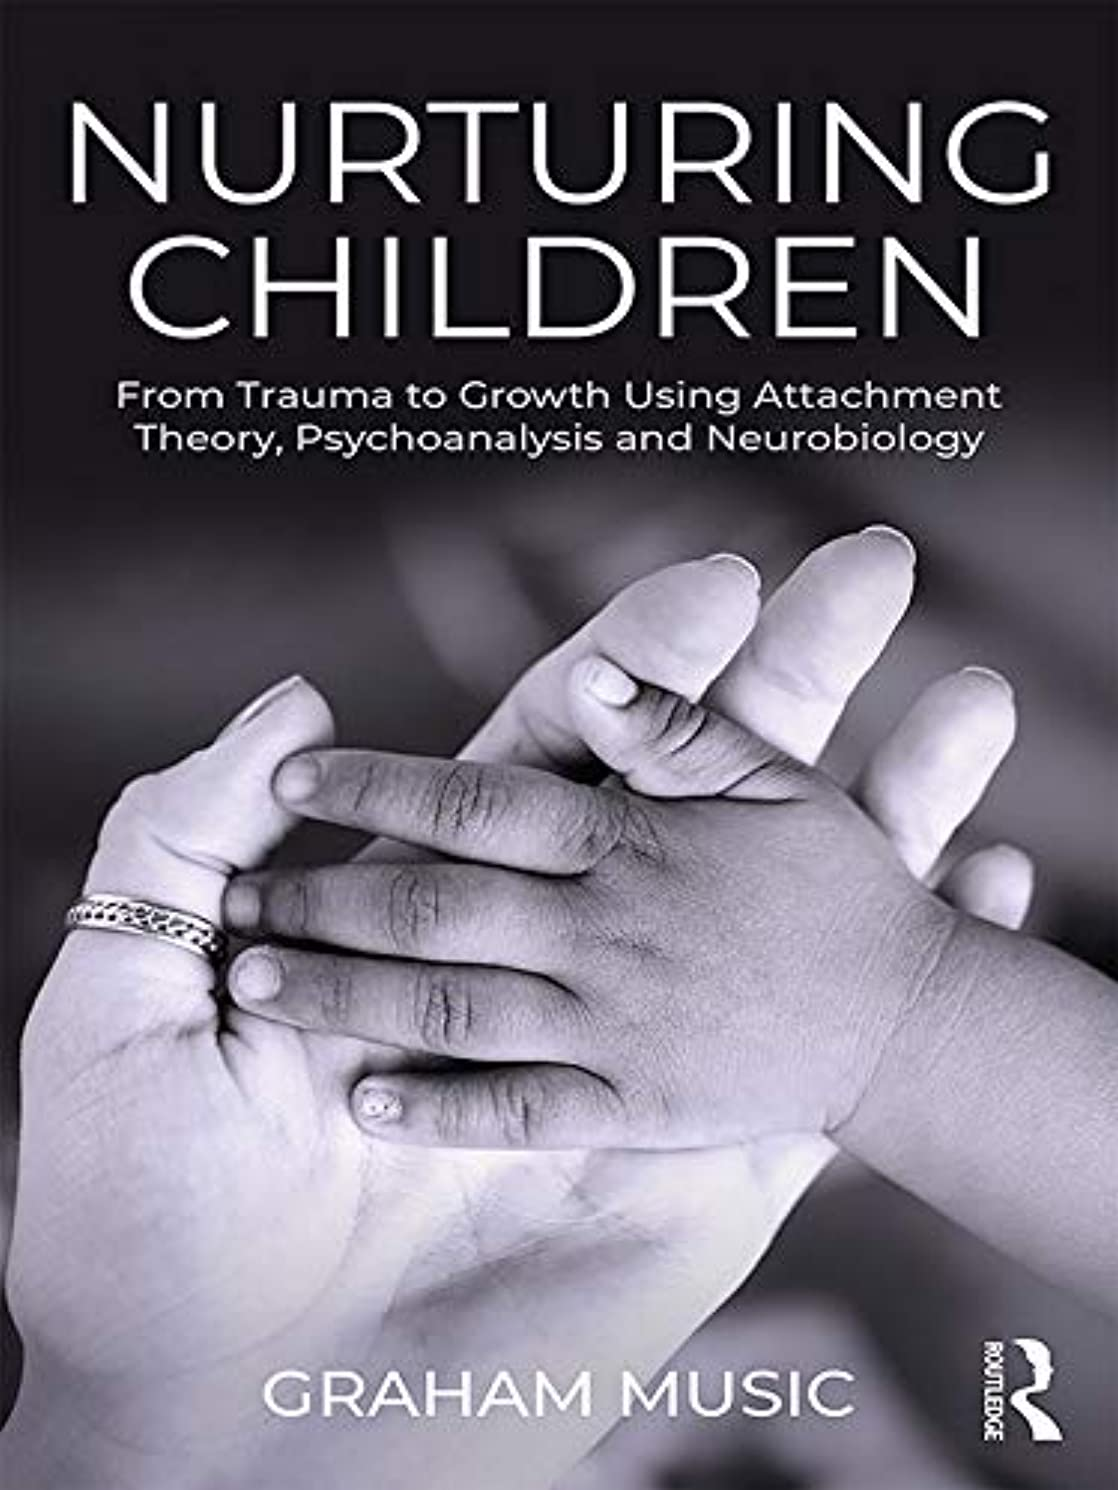 砂軽減するトランスペアレントNurturing Children: From Trauma to Growth Using Attachment Theory, Psychoanalysis and Neurobiology (English Edition)